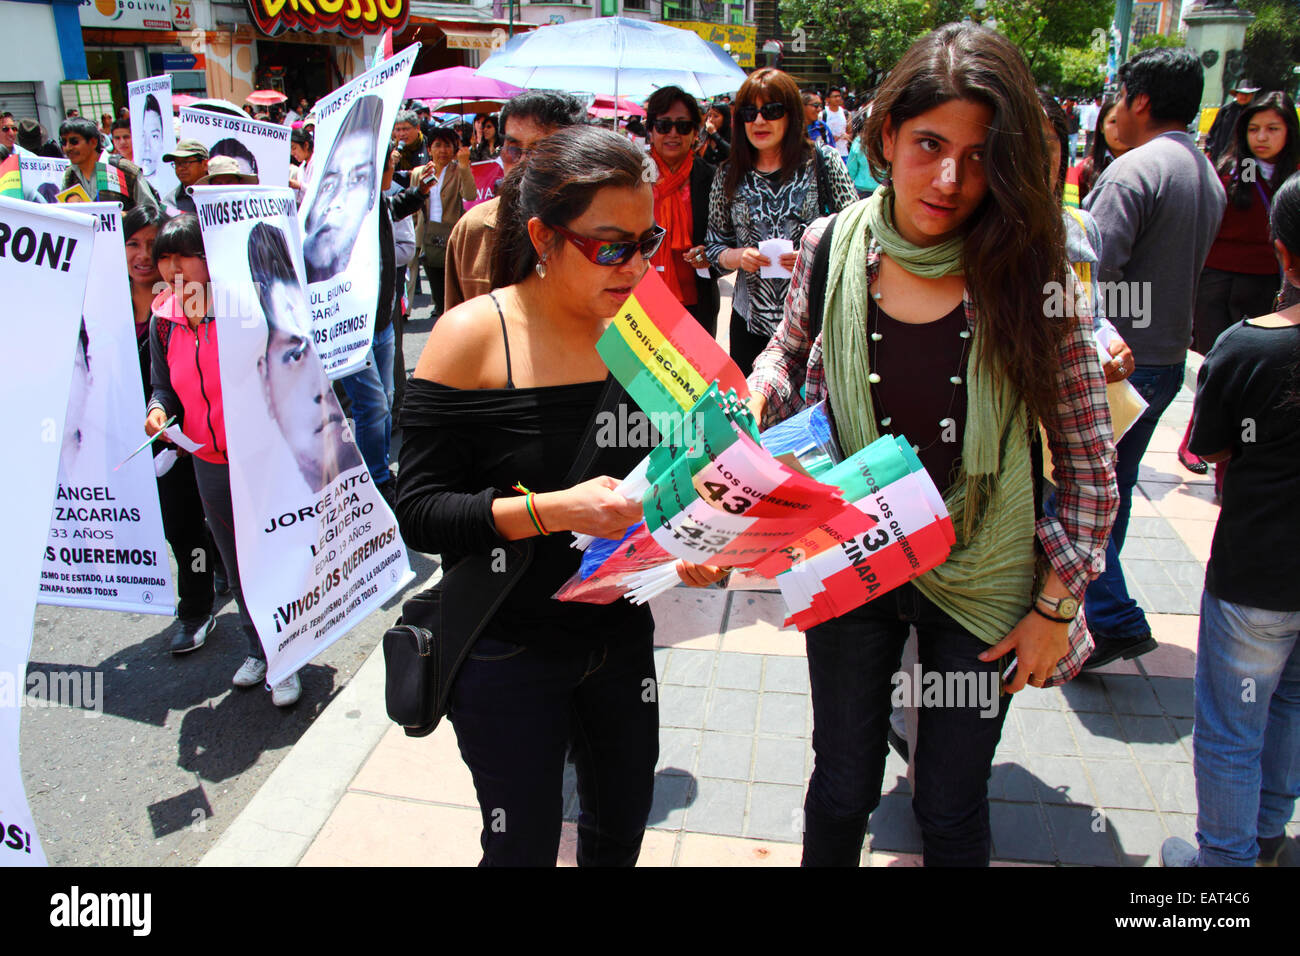 La Paz, Bolivia. 20th November, 2014. Protesters hand out flags with 43 Ayotzinapa on them during a march to demand Stock Photo